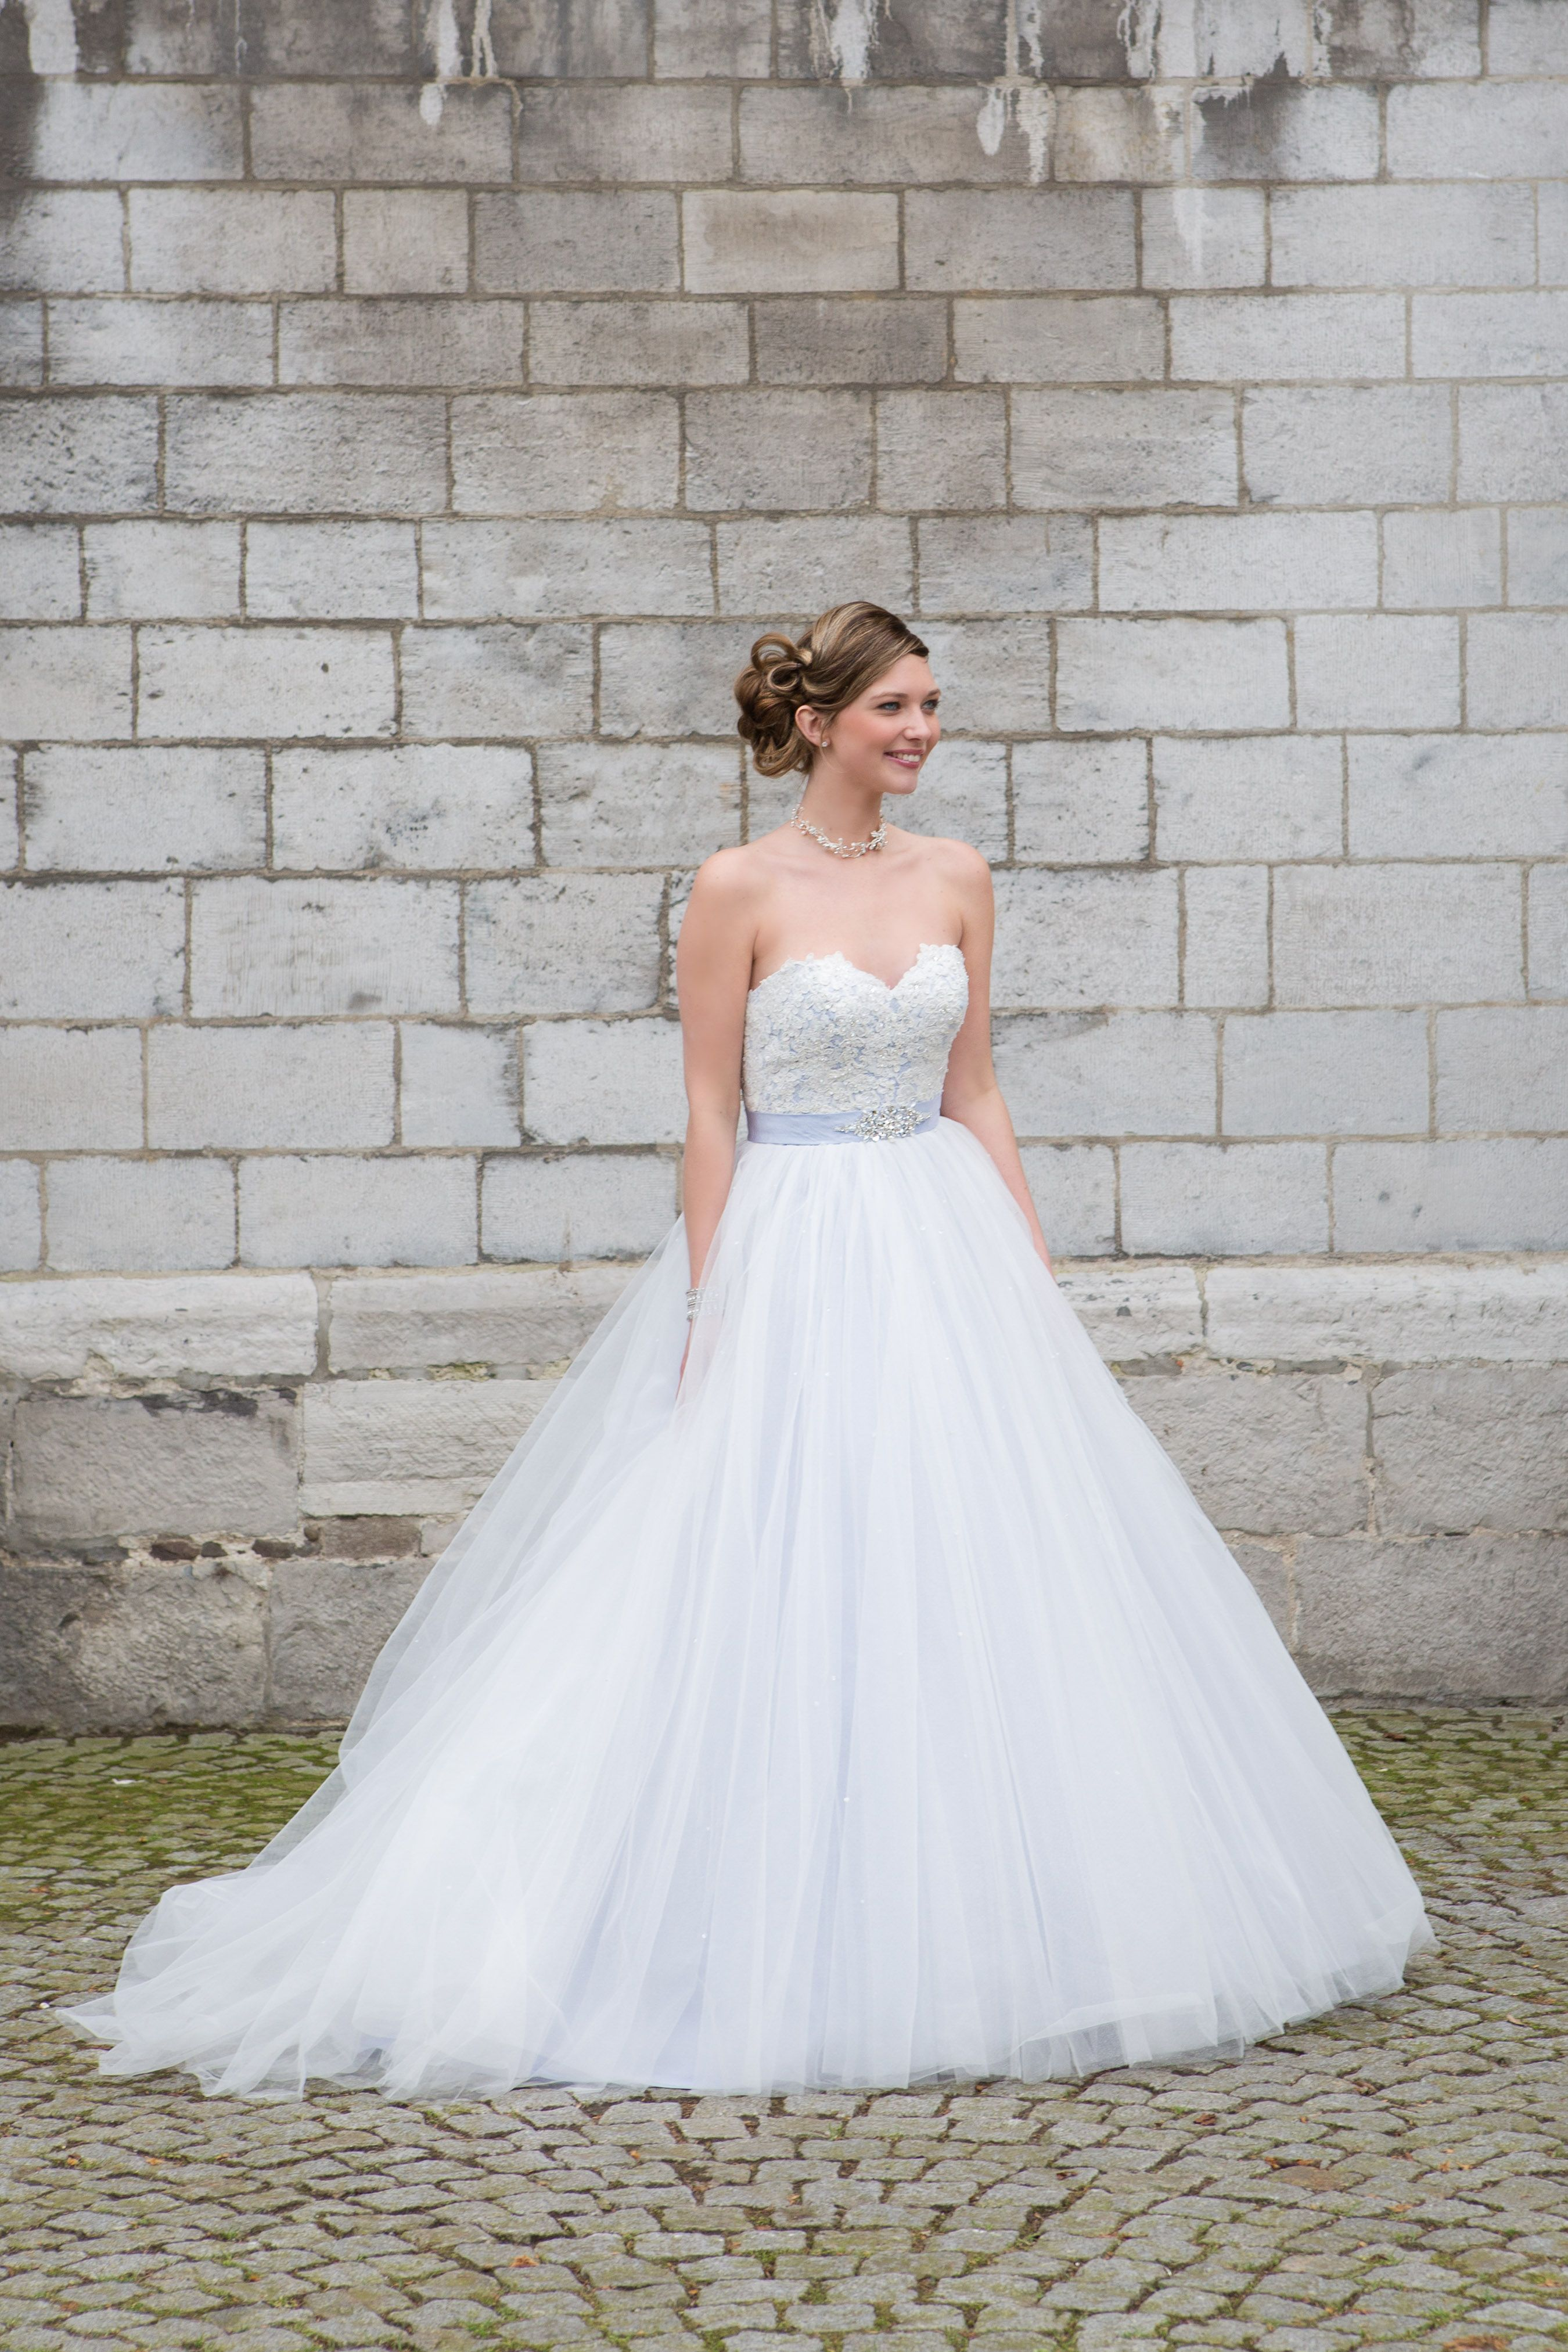 Meet our new, strapless dress 'Cairo'! Unique in it's own way with a sweetheart neckline, embroidered bodice and tulle overskirt. Dress: Cairo - Bridalstar 2017  #brides #love #bridalstar #wedding #inspiration #dress